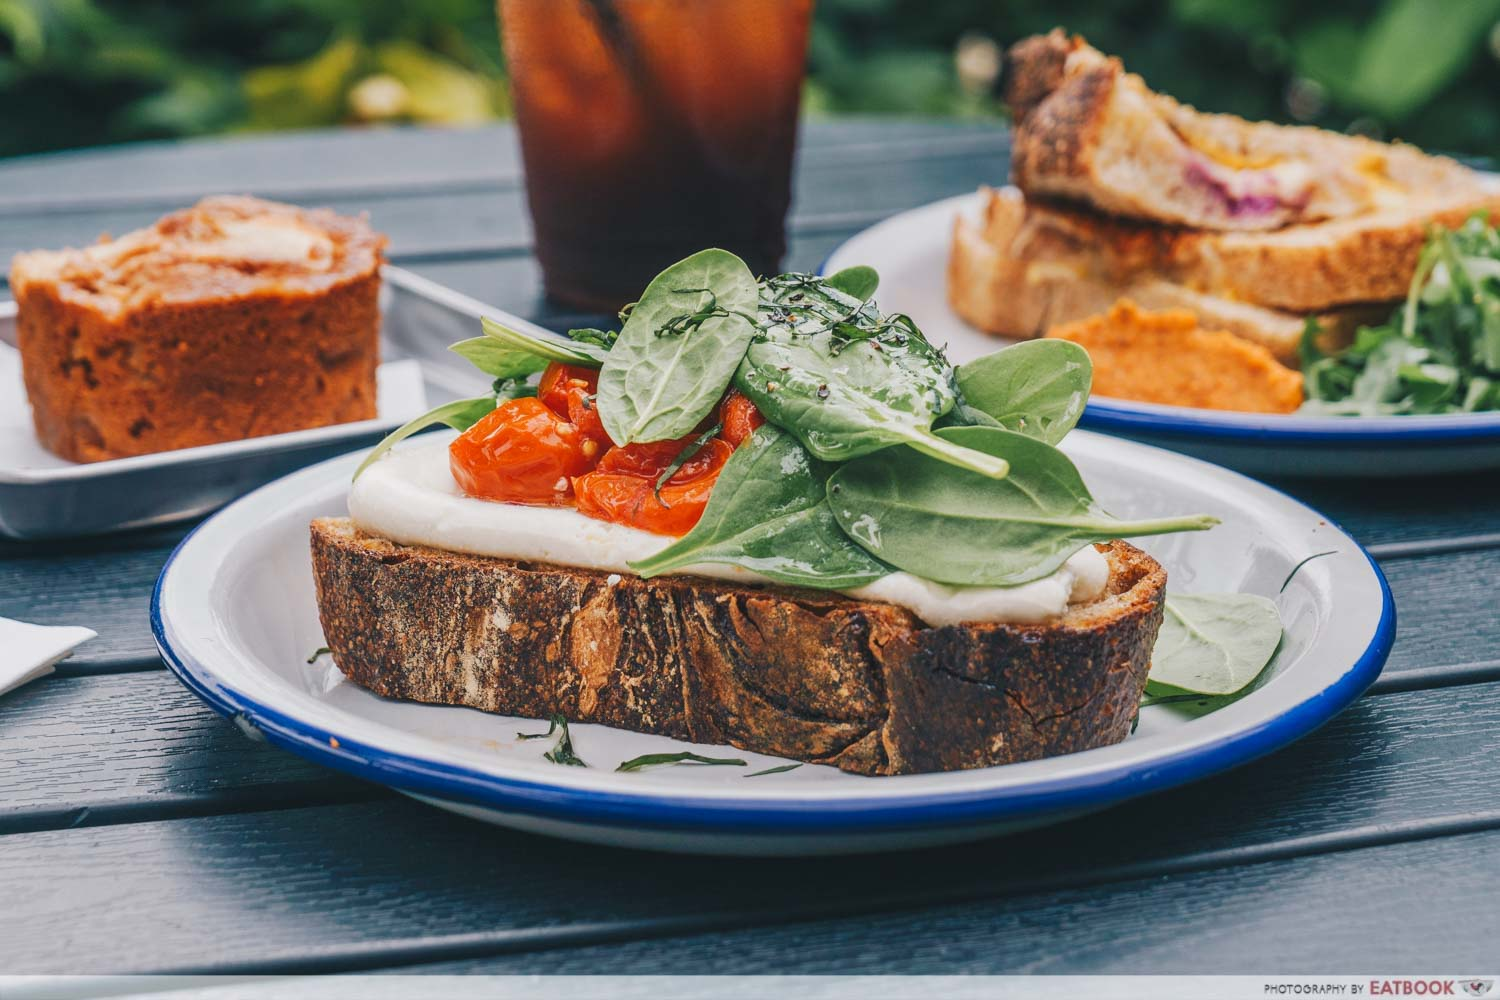 Bukit Timah Cafes - Micro Bakery and Kitchen